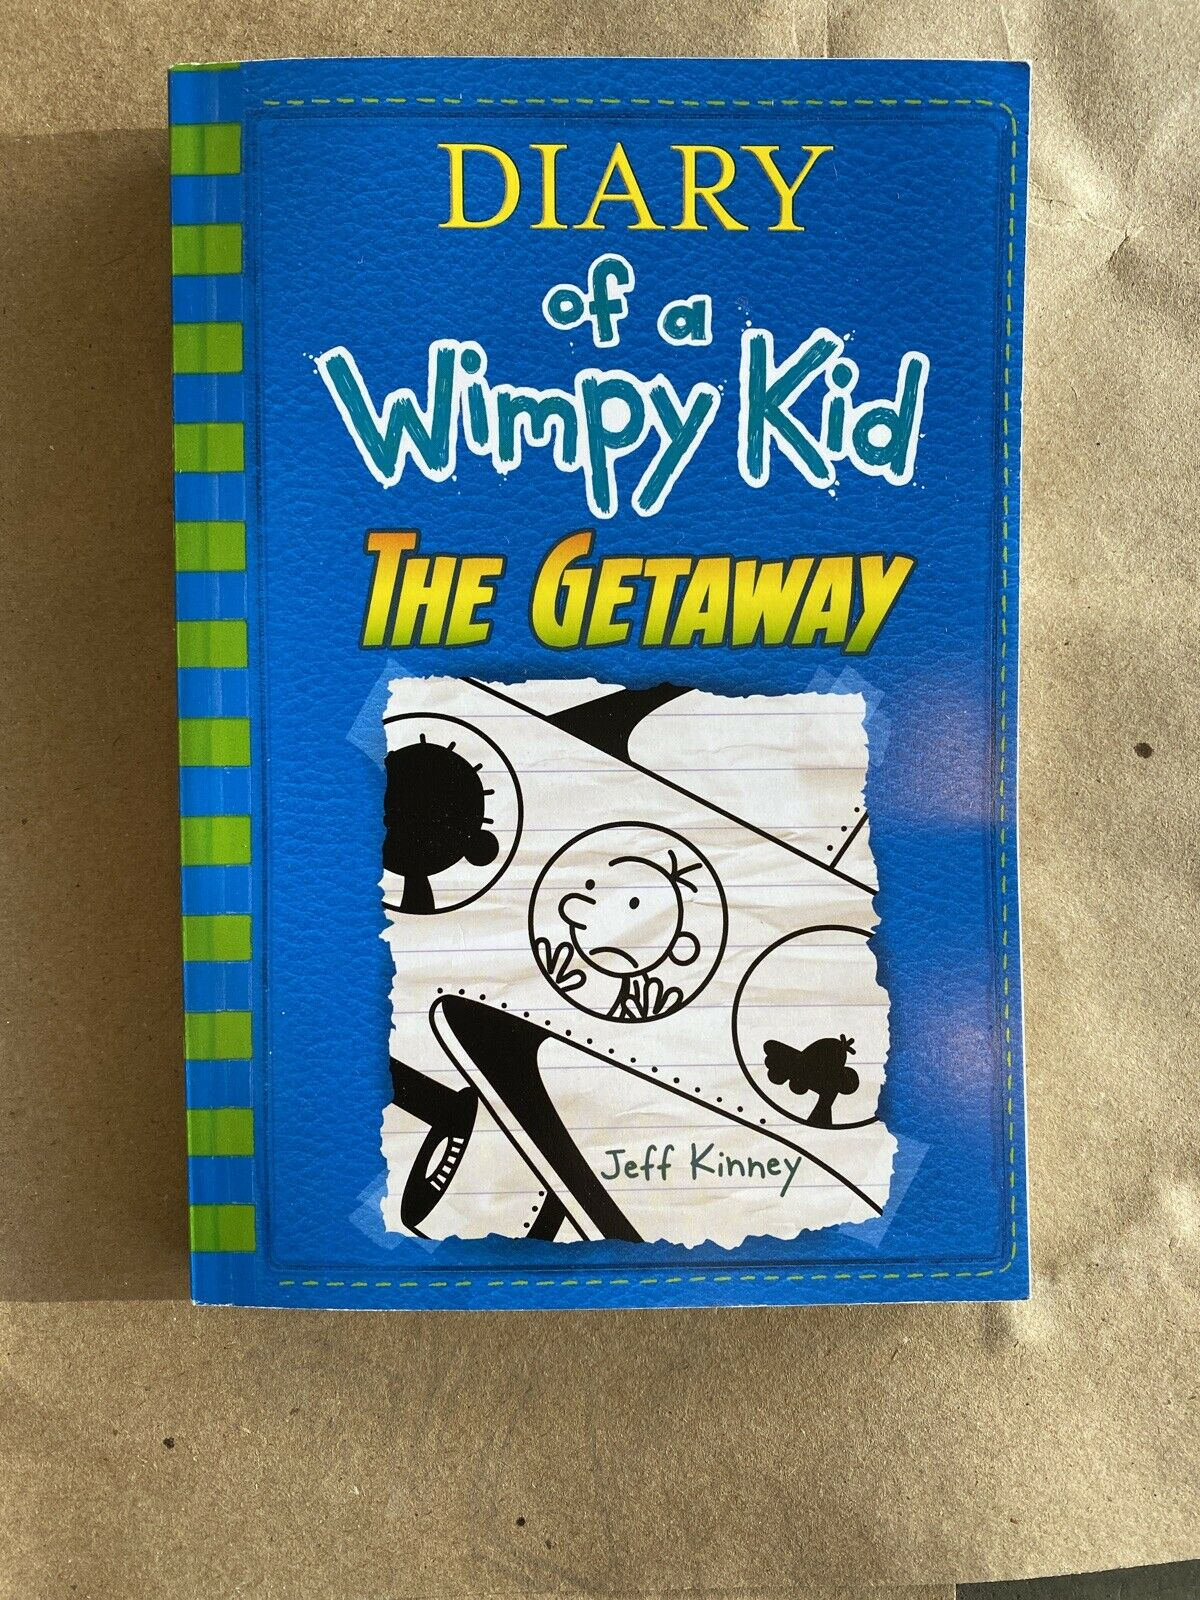 Diary Of A Wimpy Kid The Getaway Book 12 Paperback Edition Jeff Kinney For Sale Online Ebay